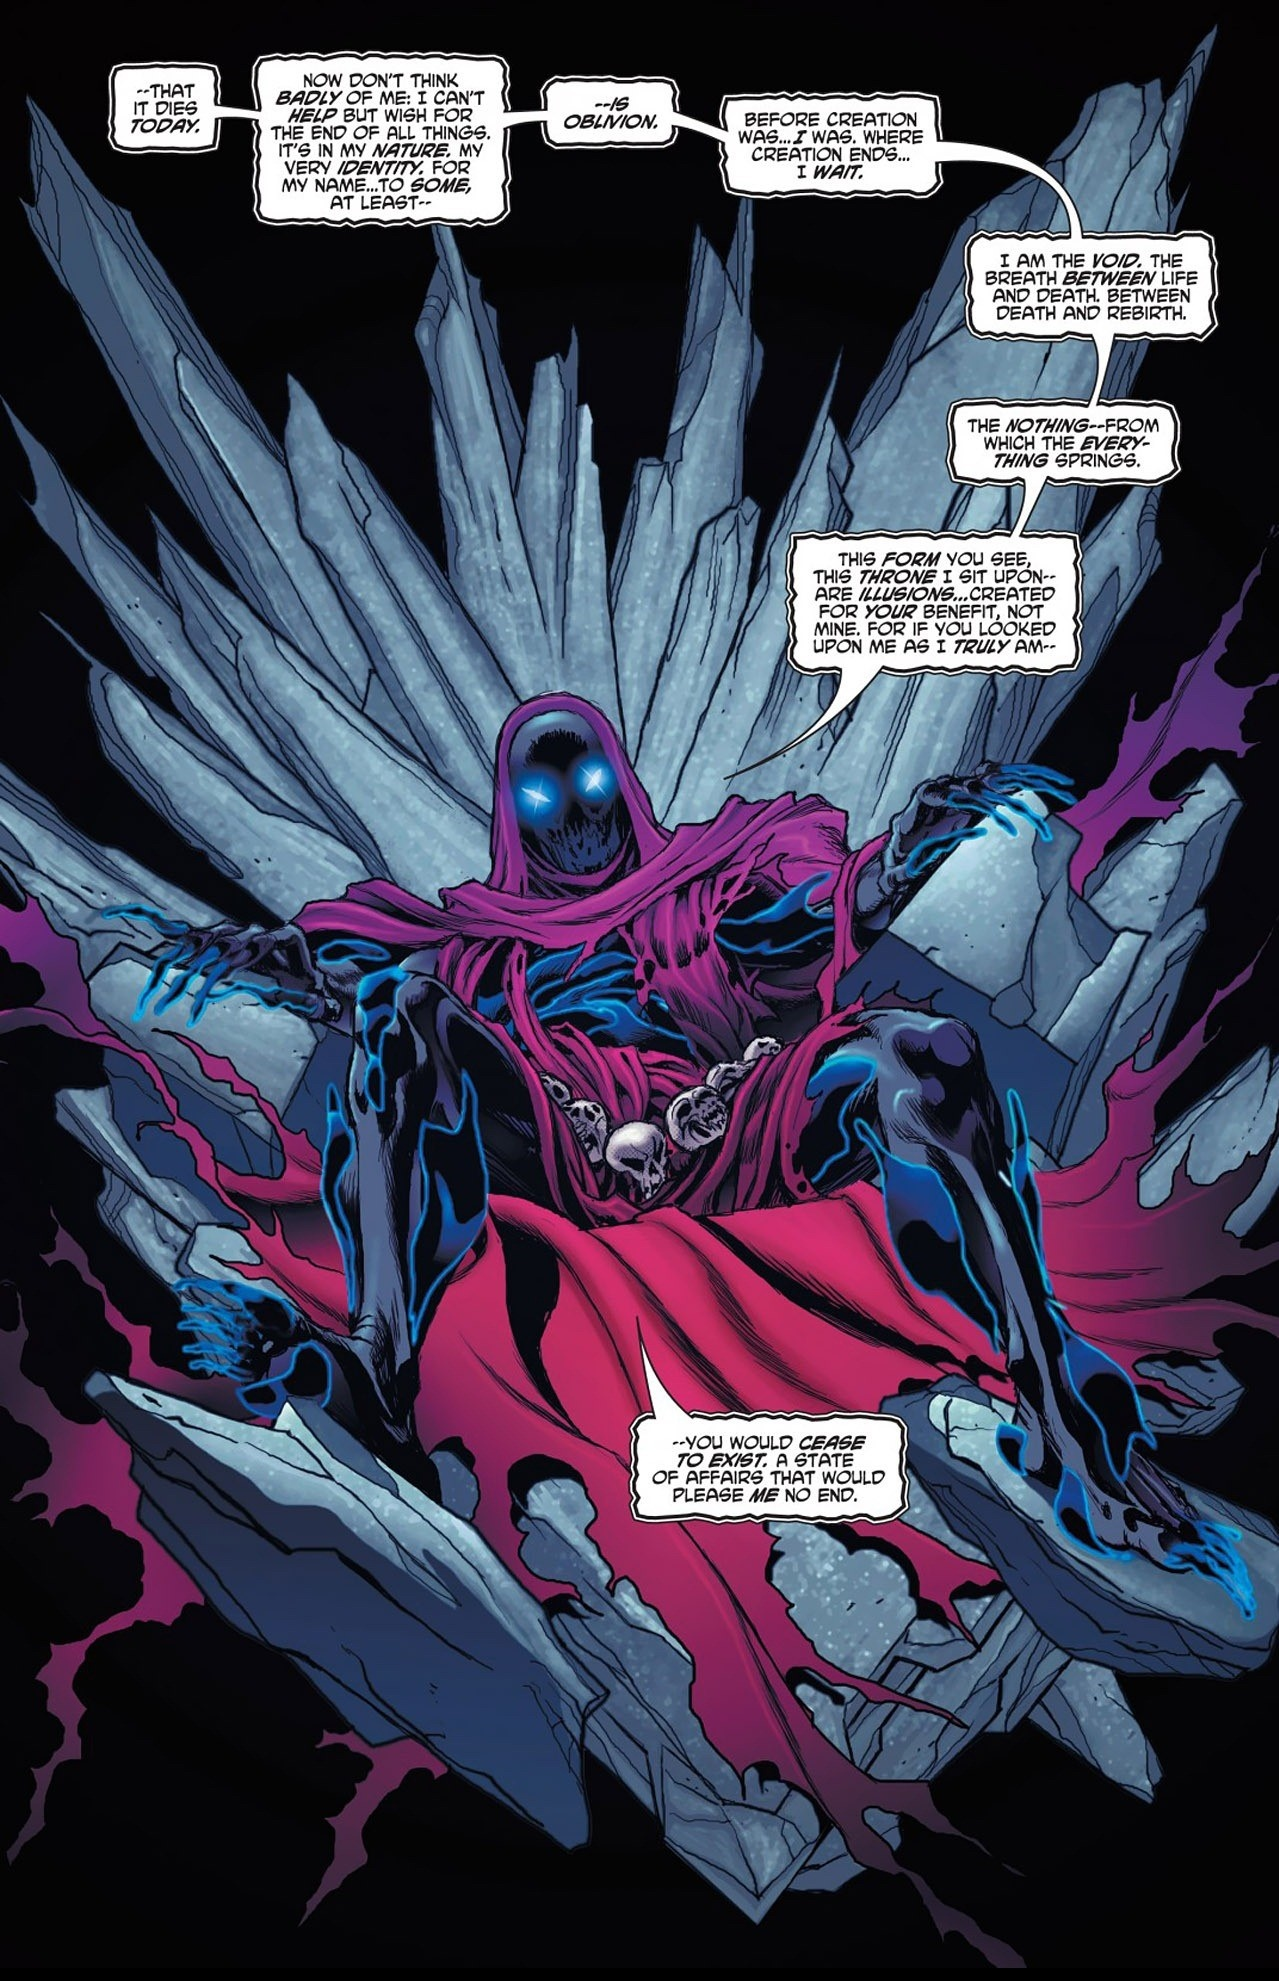 Who Is The Most Powerful And Dangerous Villain In Marvel Universe Here Comes Strongest Magnetic Field To Be Ever Created Oblivion A Character From Comics It Embodiment Of Nonexistence Residing Beyond Multiverse All Abstract Personifications That